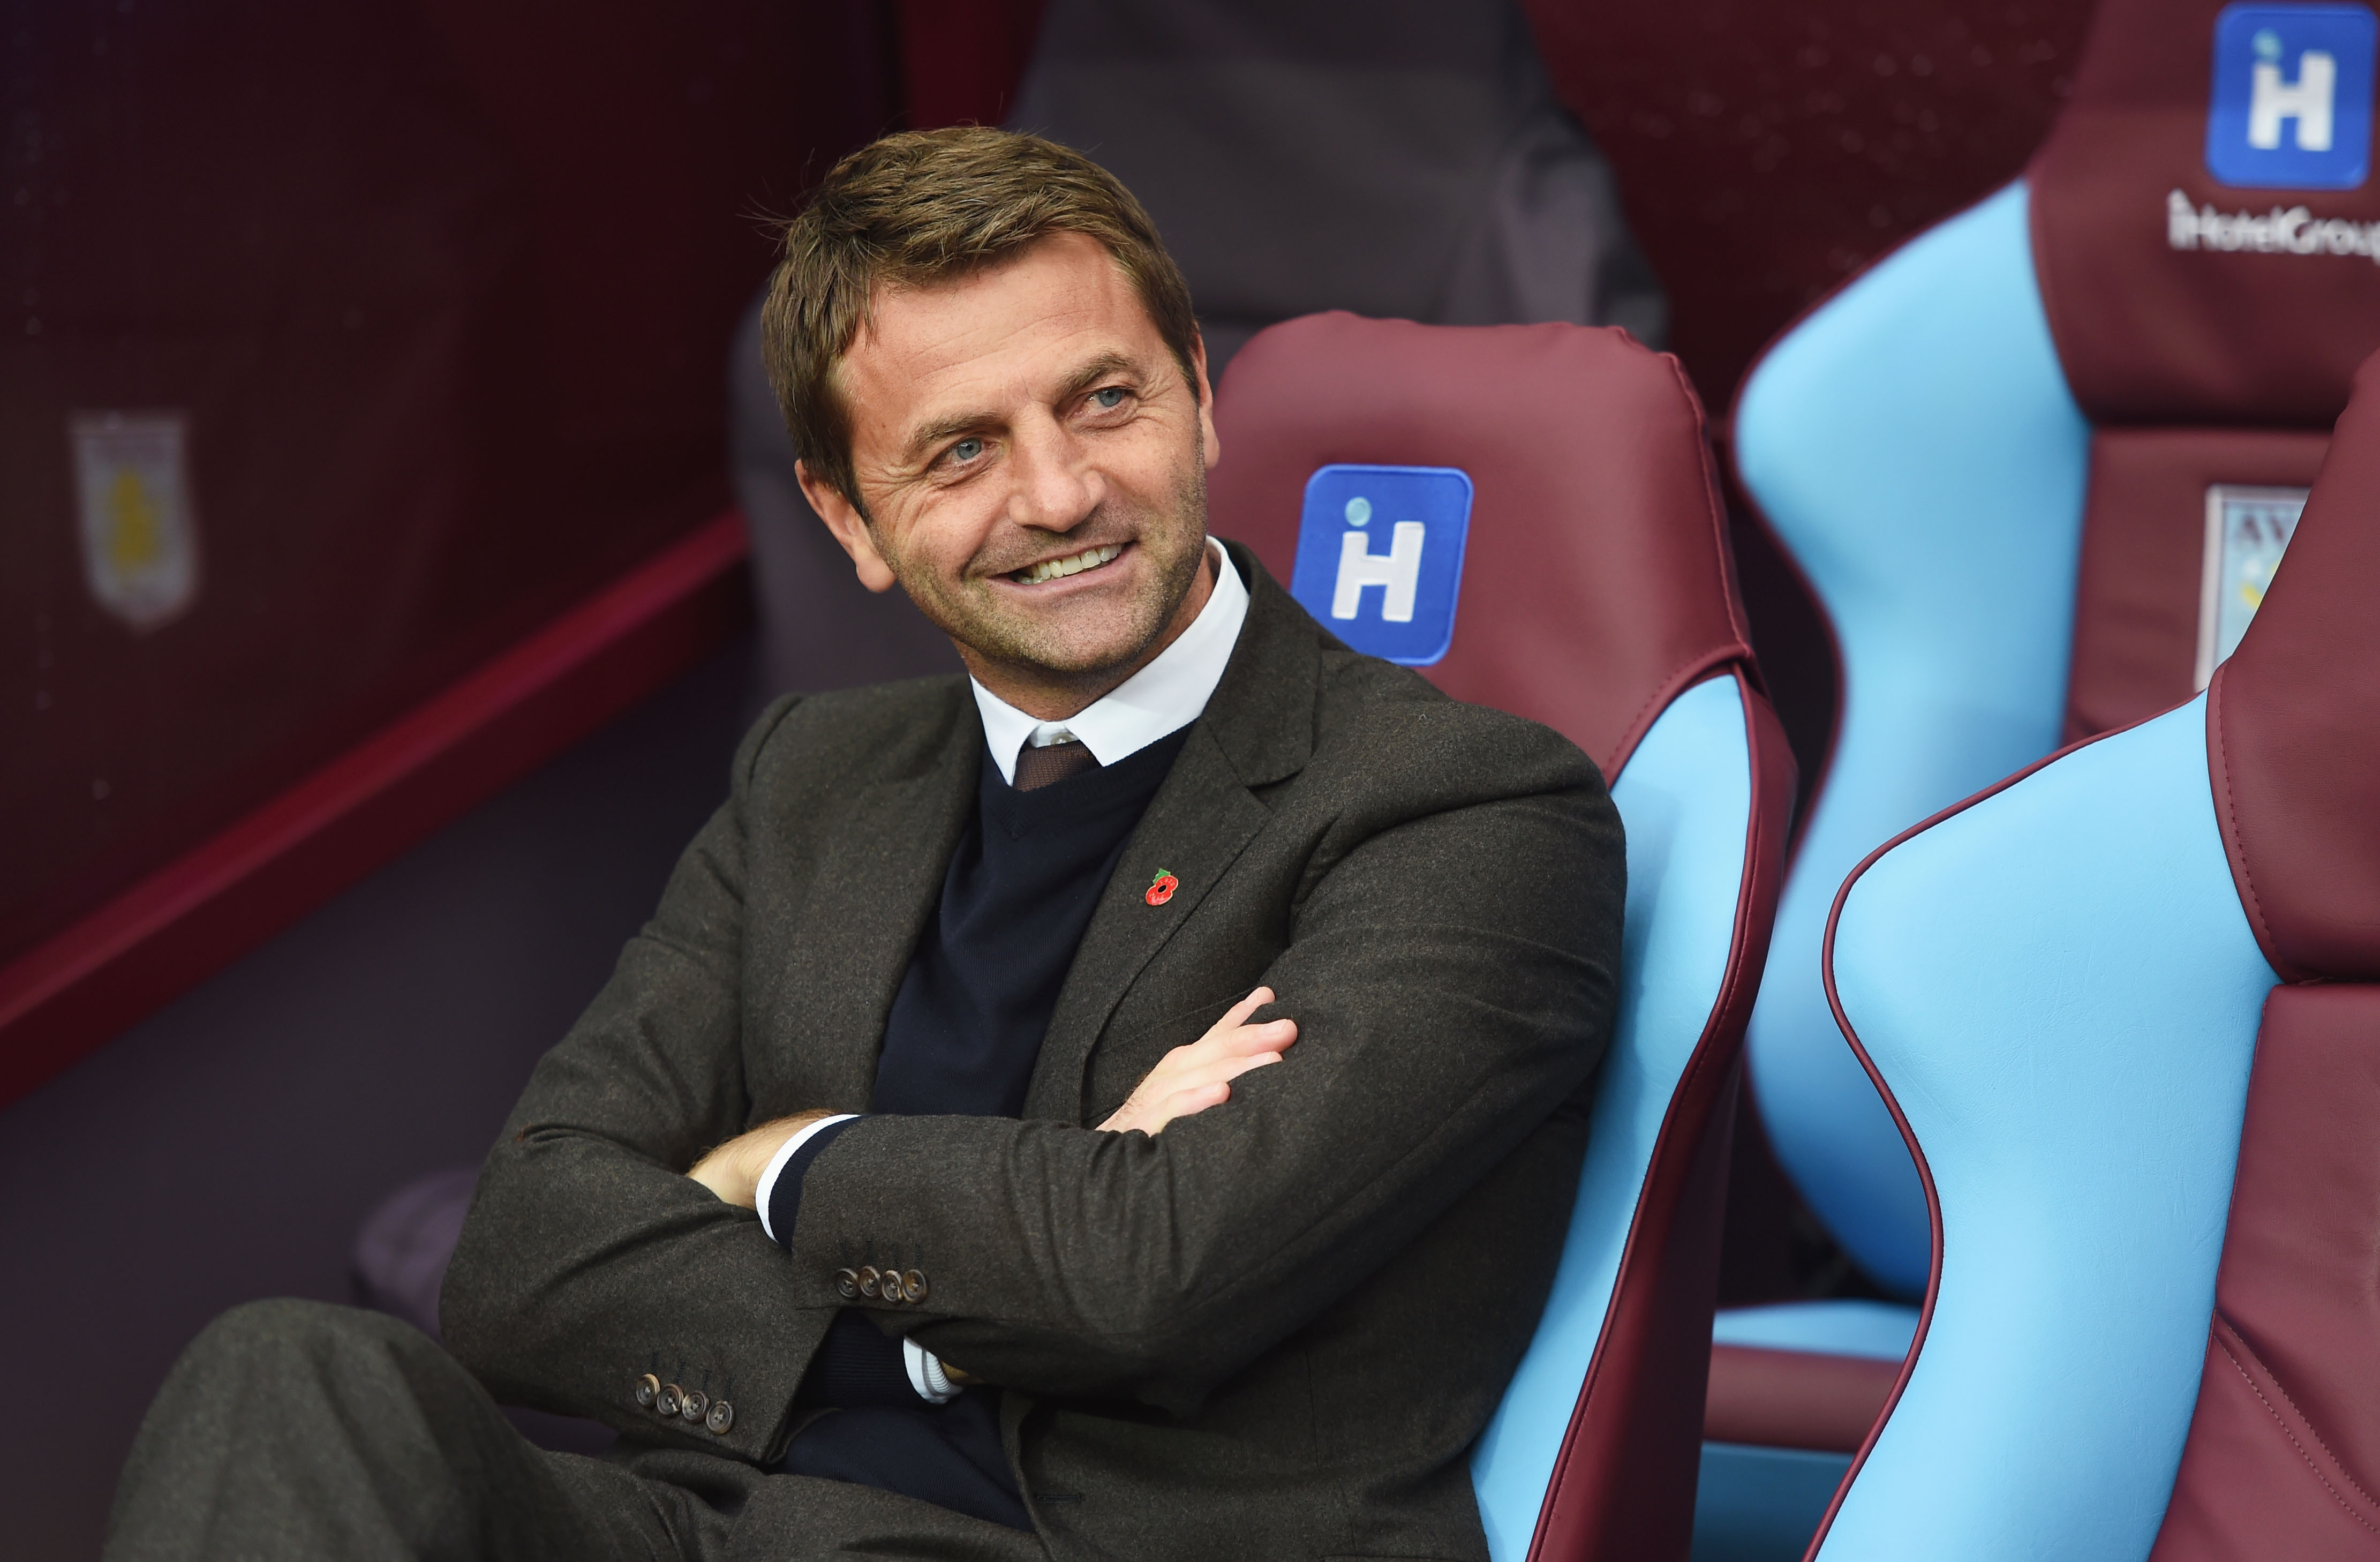 BIRMINGHAM, ENGLAND - OCTOBER 24: Tim Sherwood Manager of Aston Villa looks on prior to the Barclays Premier League match between Aston Villa and Swansea City at Villa Park on October 24, 2015 in Birmingham, England. (Photo by Michael Regan/Getty Images)